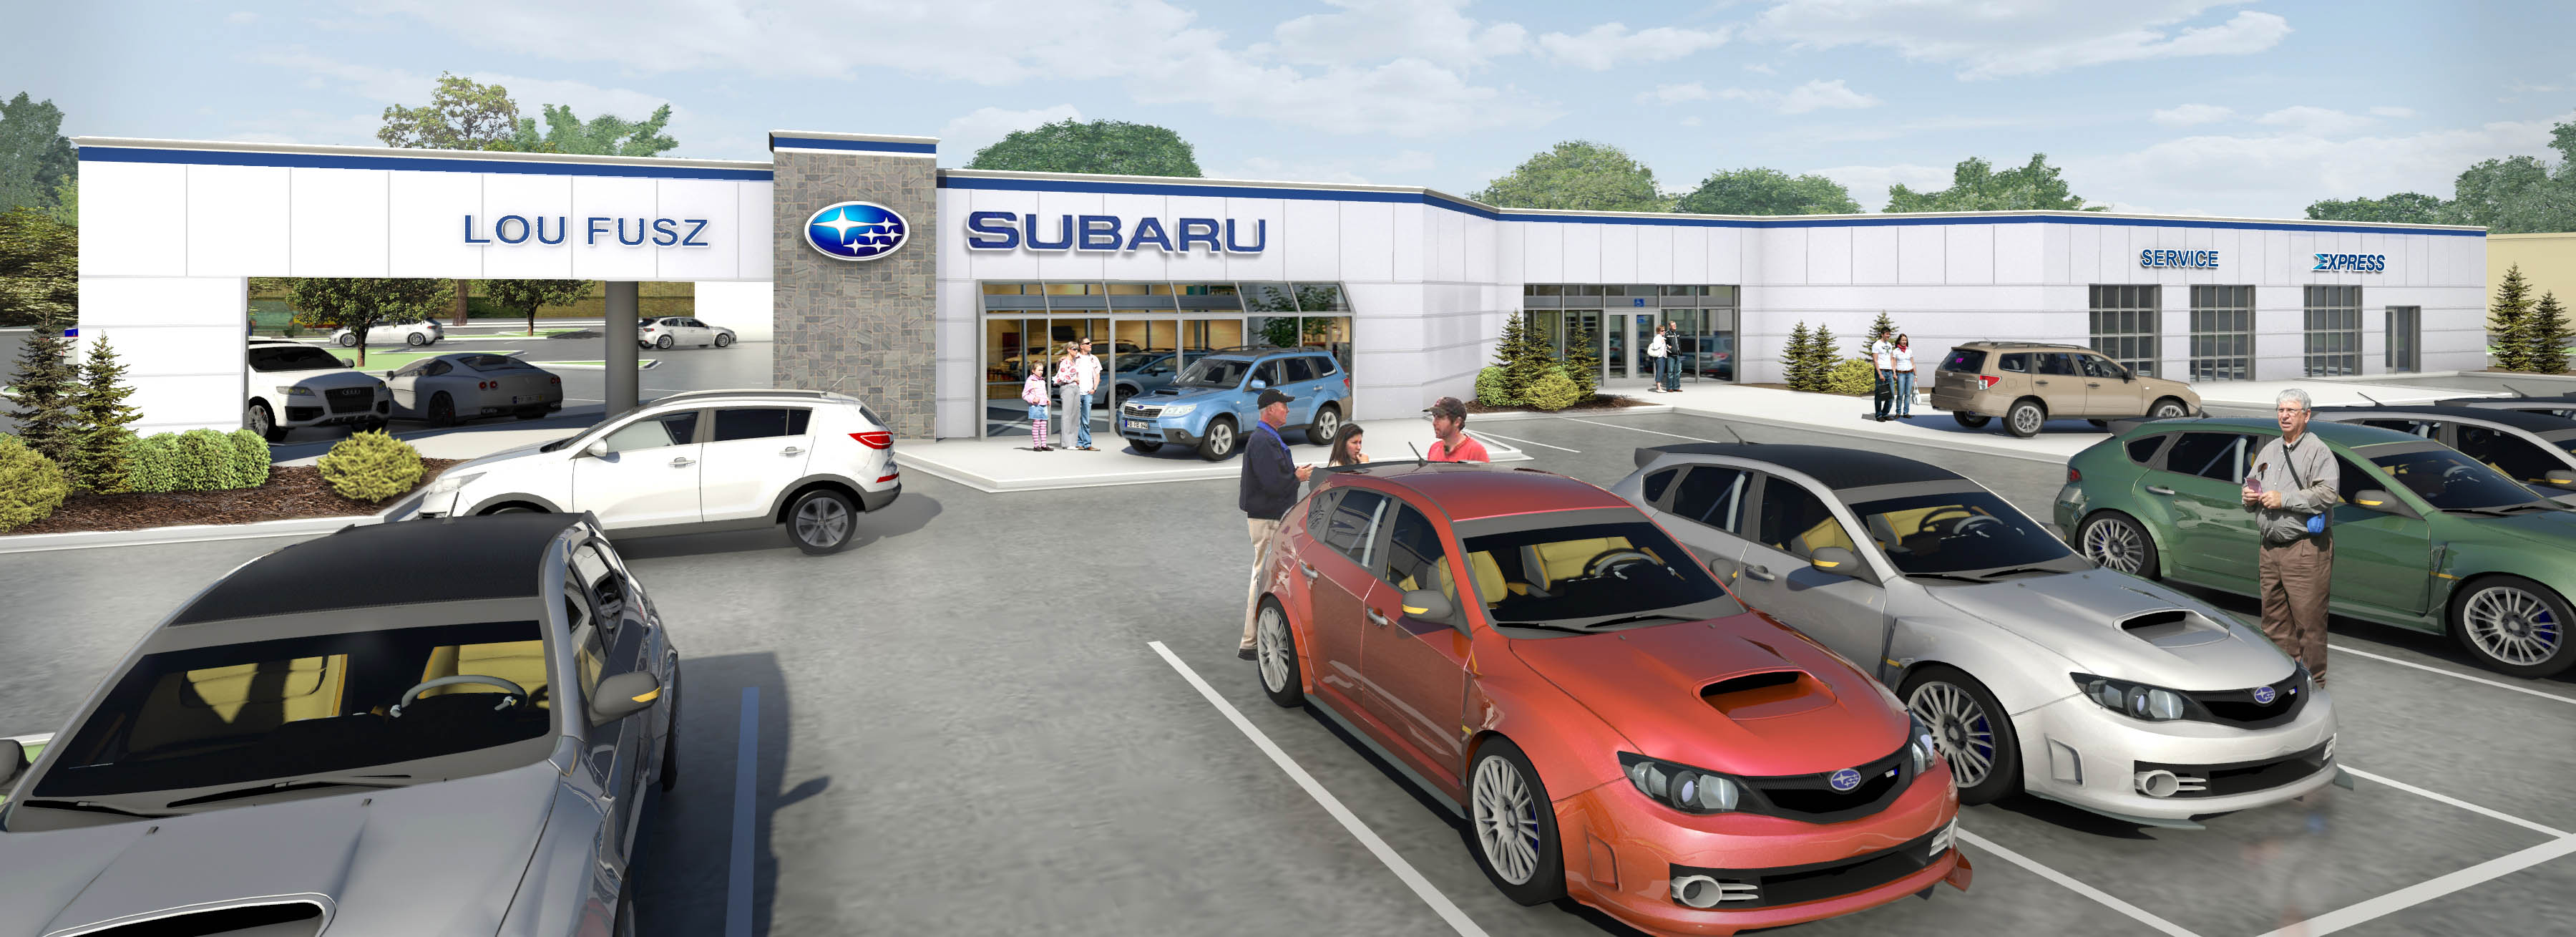 Lou Fusz Subaru >> The New Lou Fusz Subaru St Peters Store Lou Fusz Subaru St Peters